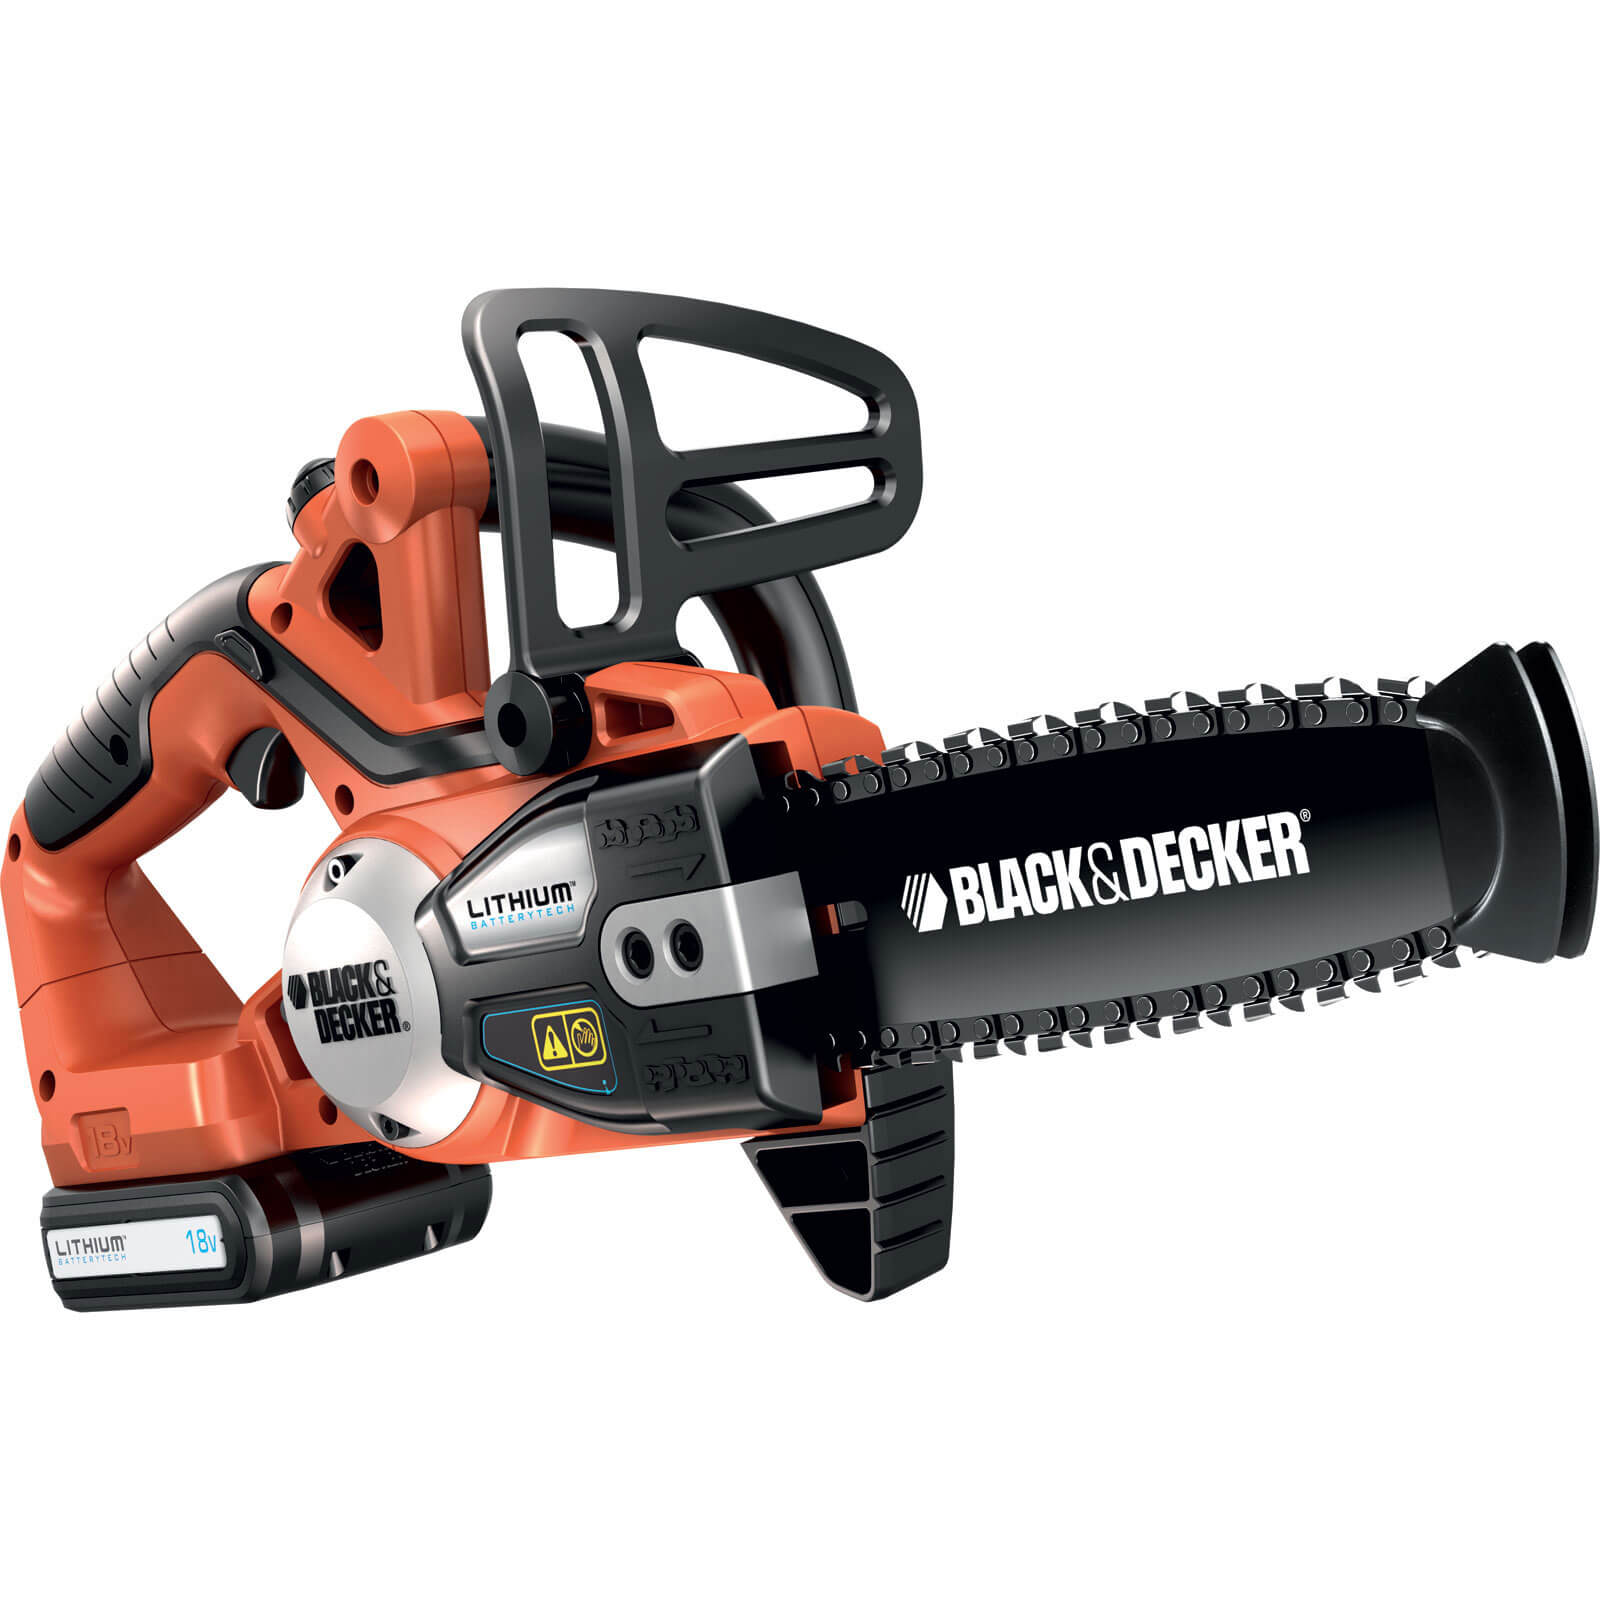 Black & Decker GKC1820L 18v Cordless Chain Saw 200mm / 8&quot Bar + 1 Lithium Ion Battery 1.5ah Plus FREE 2nd Battery Worth £62.95